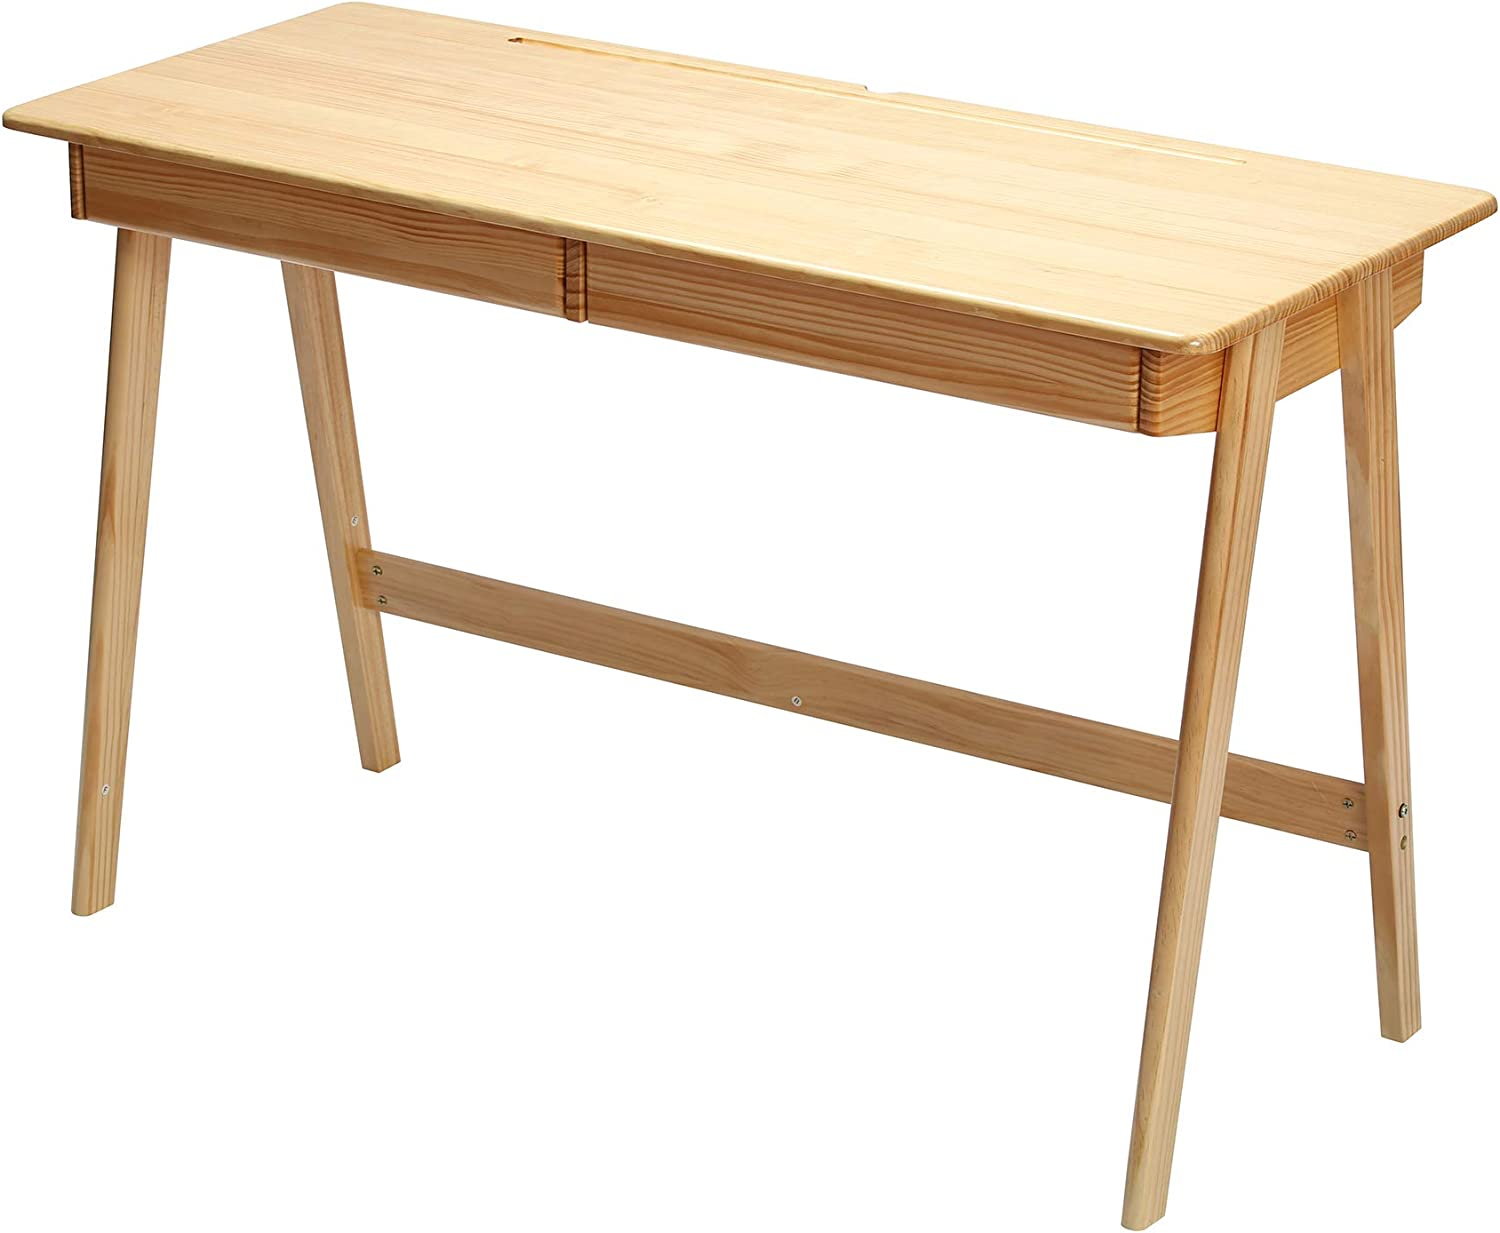 Function Home Computer Desk with Drawers, Solid Wood Office Writing Desk, Modern Study Table with Spacious Desktop, Writing Desk for Bedroom Home Office,Natural